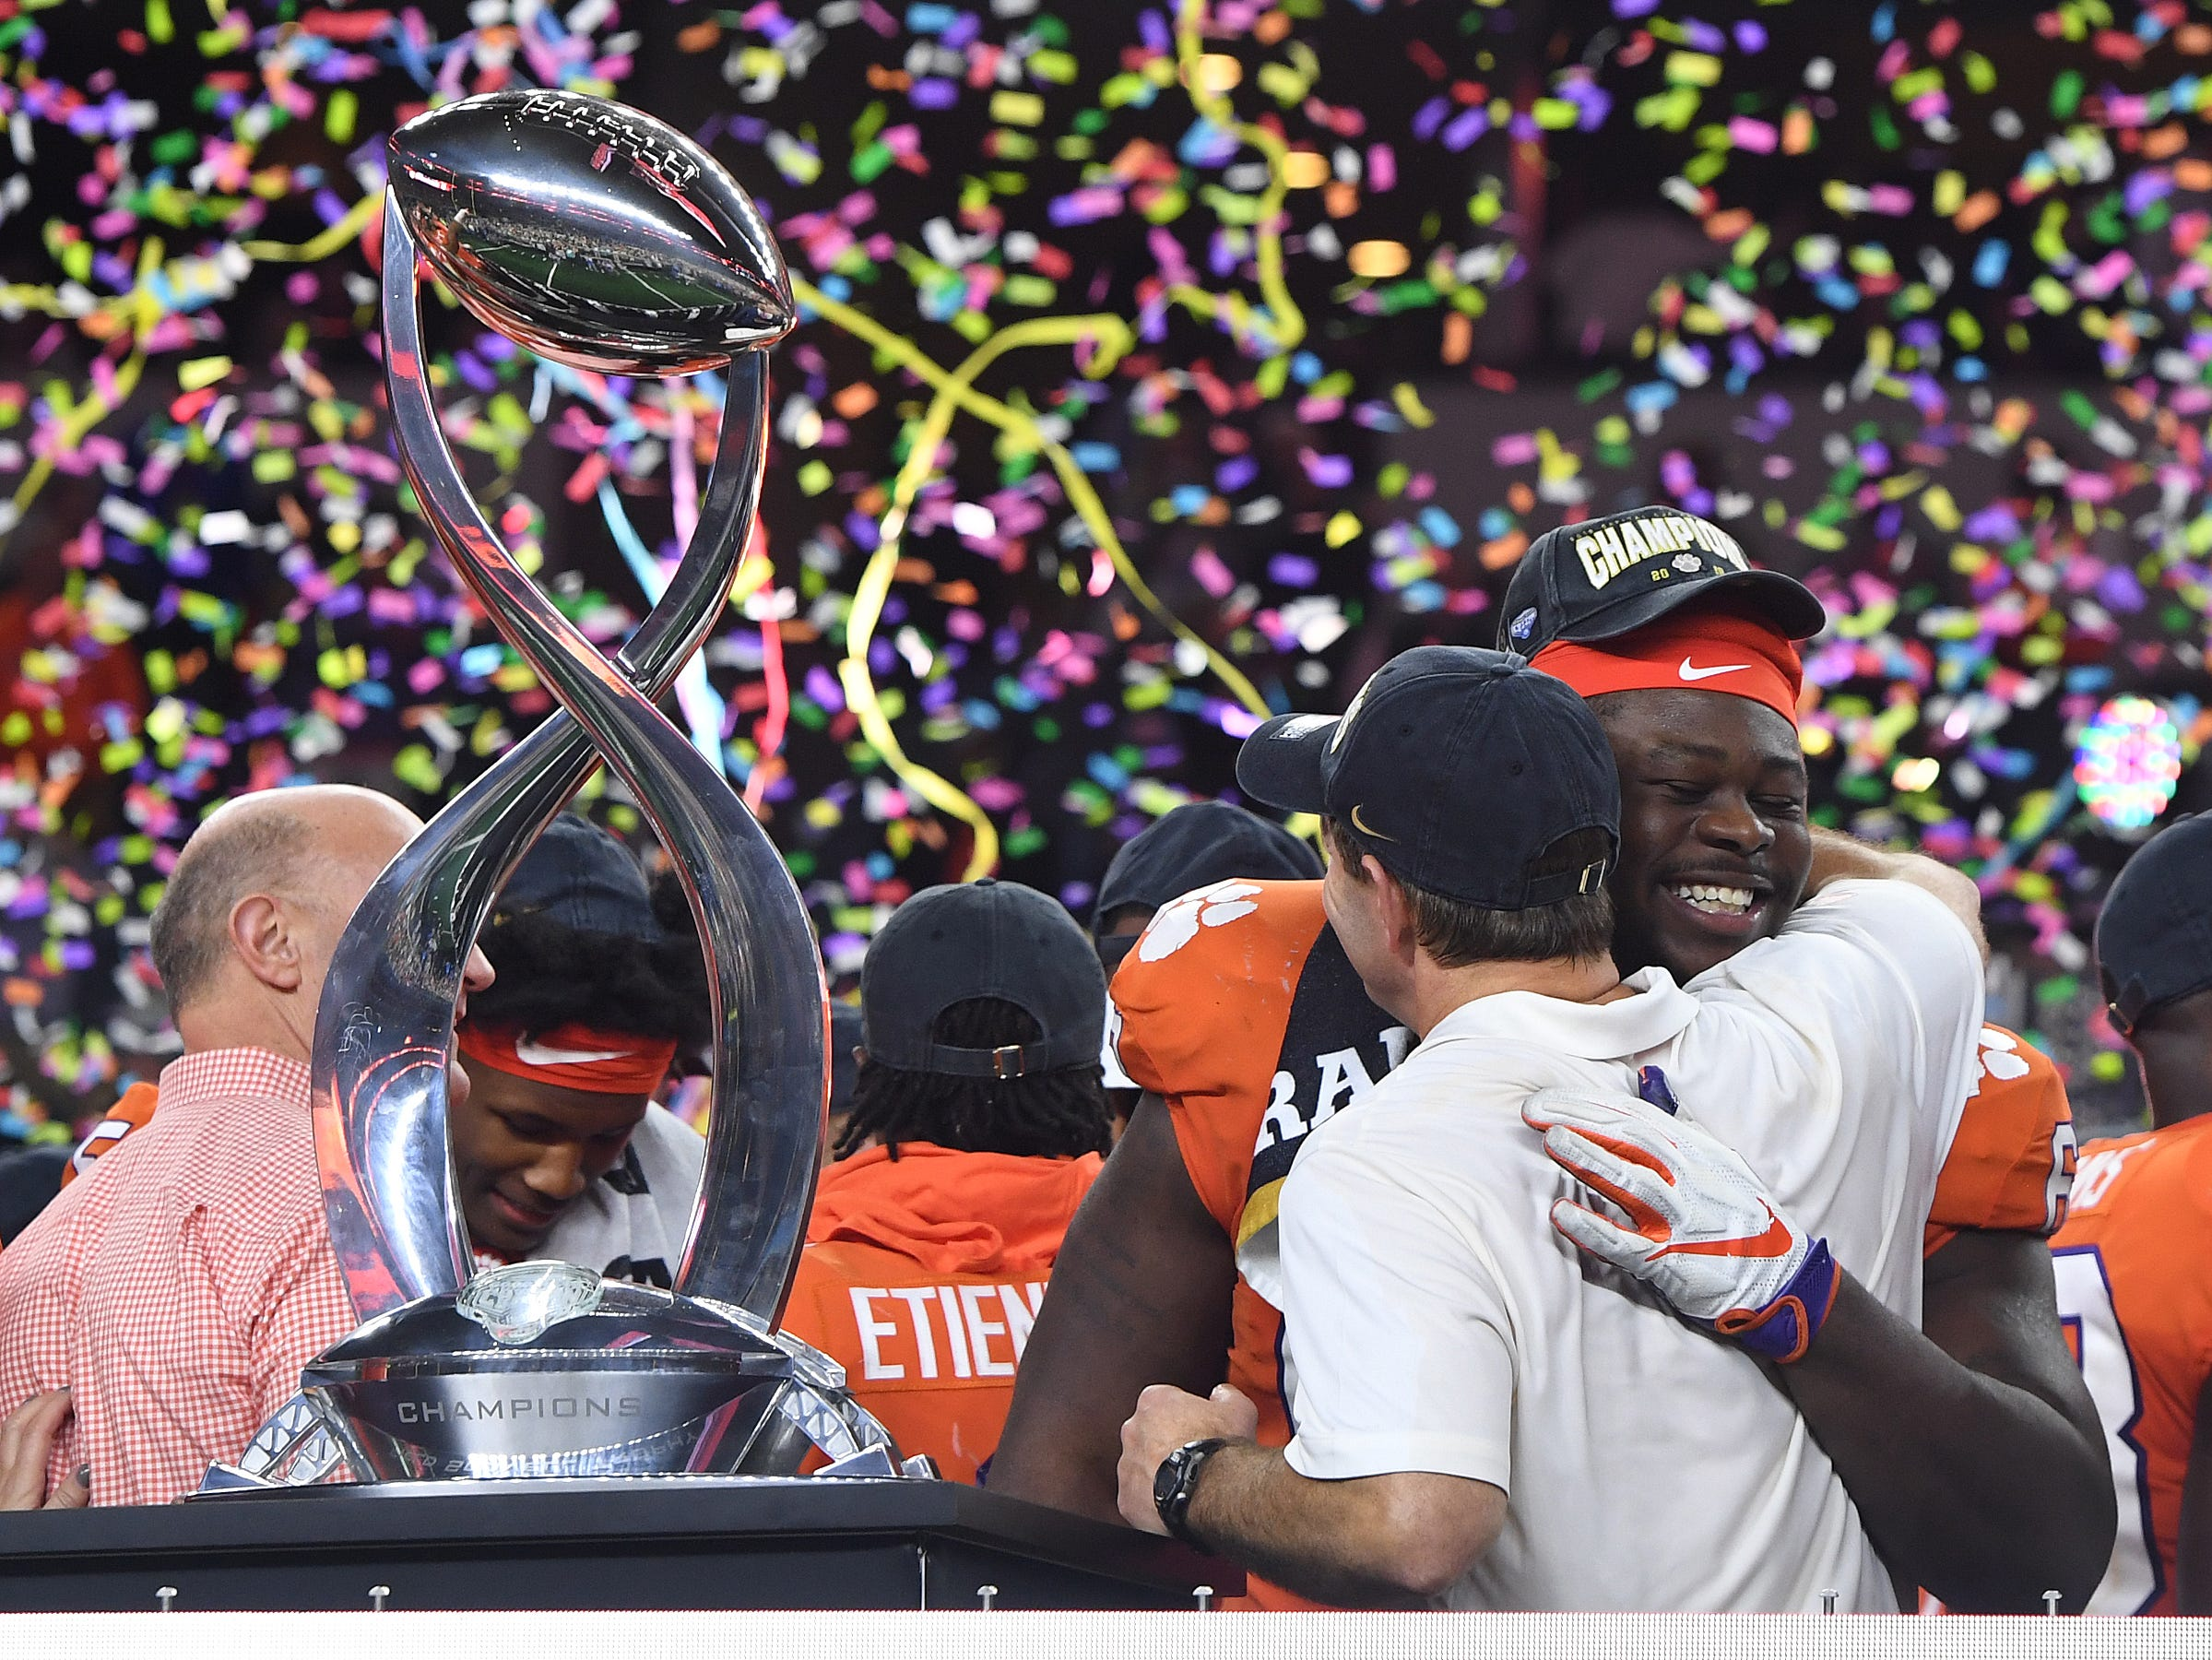 Clemson defensive lineman Albert Huggins (67) hugs head coach Dabo Swinney after the Tigers 30-3 win over Notre Dame in the Goodyear Cotton Bowl at AT&T stadium in Arlington, TX Saturday, December 29, 2018.